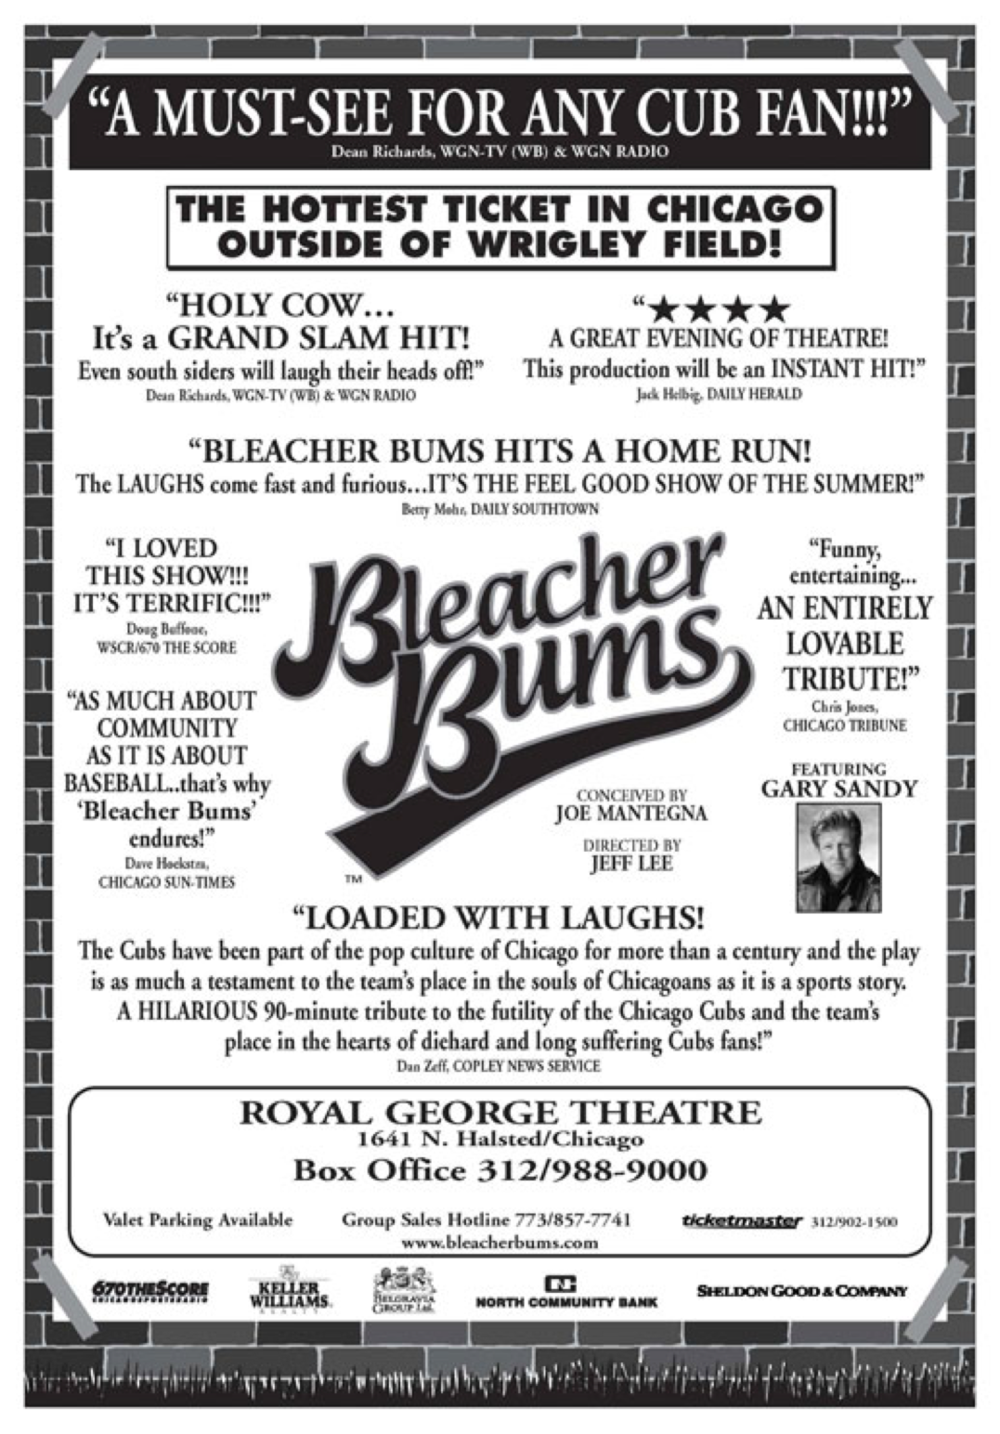 BLEACHER BUMS - the winning baseball comedy about Cubs fans, returned to Chicago at the Royal George Theatre, 1641 N. Halsted, in a special 25th Anniversary Production. The production was updated from the original script, and set, as always, in the right field bleachers at Wrigley Field during a Chicago Cubs / St. Louis Cardinals game. Conceived by Joe Mantegna and directed by Jeff Lee, BLEACHER BUMS received rave reviews. BLEACHER BUMS was originally written by and has been updated by Roberta Custer, Richard Fire, Dennis Franz, Stuart Gordon, Joe Mantegna, Josephine Paoletti, Dennis Paoli, Carolyn Purdy-Gordon, Michael Saad, Keith Szarabajka and Ian Williams. Some people say it all started in 1908, the last time the Chicago Cubs won the World Series. Others in 1945, the last time the Cubs appeared in a World Series. But the truth is it started in the heart of every Cubs fan since the beginning of time, and more accurately, in the mind of a young and promising actor (and die-hard Cubs fan) named Joseph Mantegna, a member of The Organic Theater Company, one of Chicago's most prolific acting troupes that in the late 1970's turned out hit after hit such as; Sexual Perversity in Chicago by David Mamet, The Wonderful Ice Cream Suit by Ray Bradbury, Warp by Stuart Gordon and Bury St. Edmund, and BLEACHER BUMS, the biggest hit of them all! BLEACHER BUMS first opened in 1977 under the direction of Stuart Gordon and ran for an unprecedented two years to sold-out audiences, winning the hearts of Chicago theater goers, baseball fans, theater critics and the city of Chicago before embarking on one of the most successful road trips in history, with winning performances across the country including a six-month run in New York and an unprecedented 13-year run in Los Angeles. BLEACHER BUMS has made its mark on the American theater scene as one of the most often performed shows. Additionally, BLEACHER BUMS garnered an Emmy Award in 1980 for the WTTW / Chicago television production o